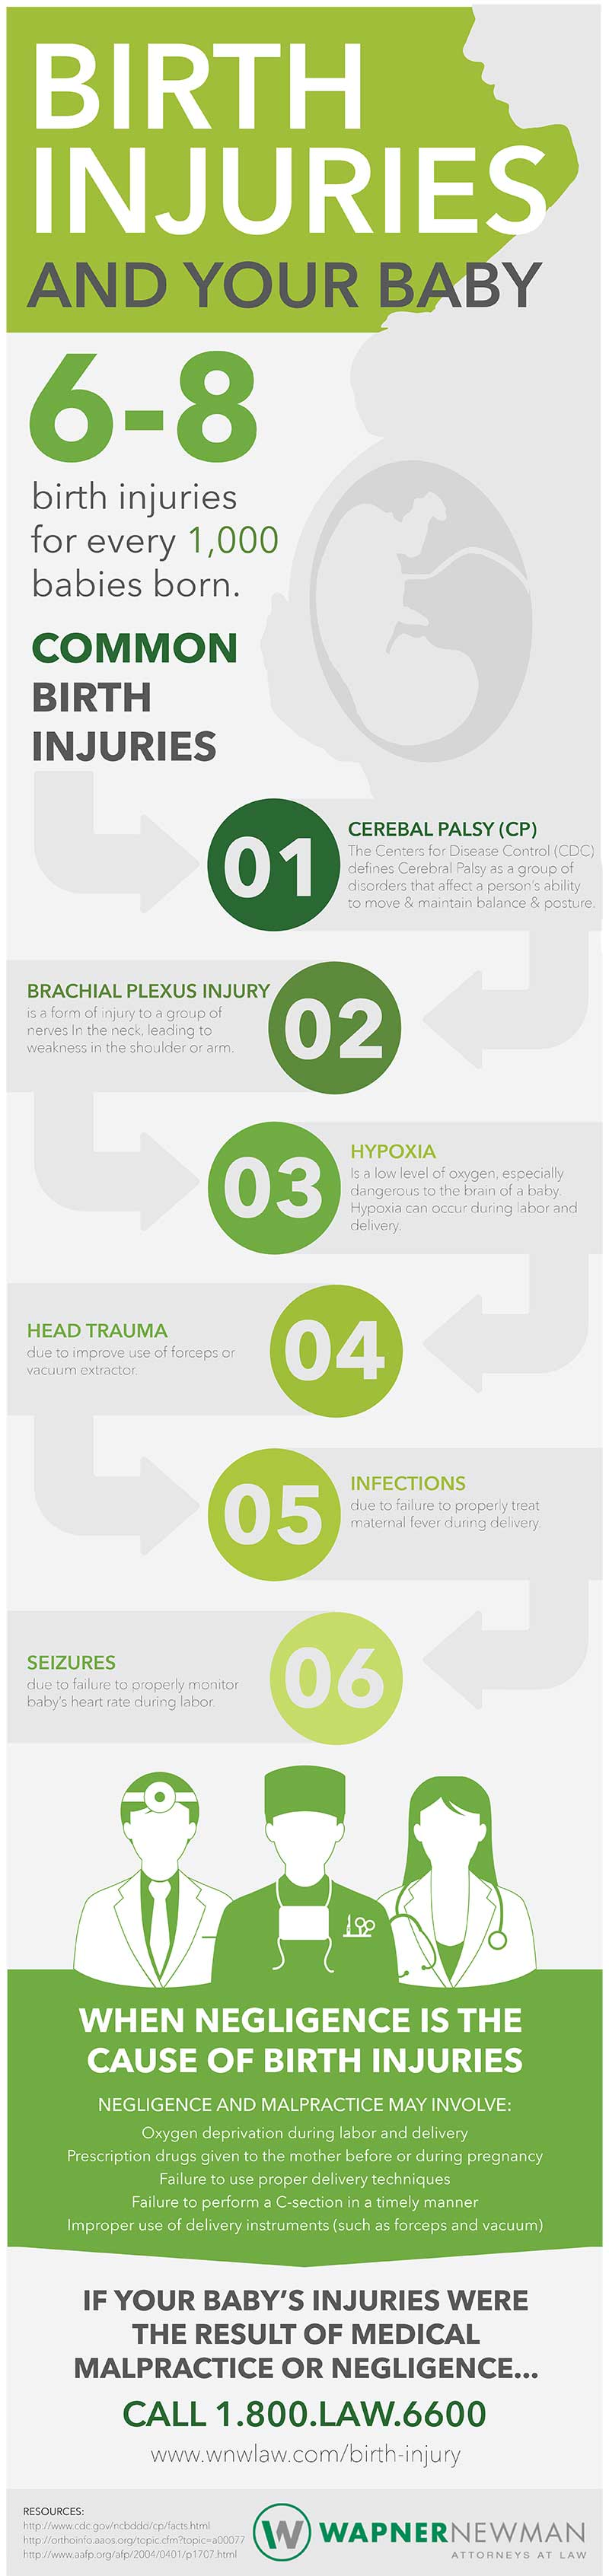 The Devastation of Birth Injuries: 6 Injuries that Can Cause a Lifetime of Pain - Infographic